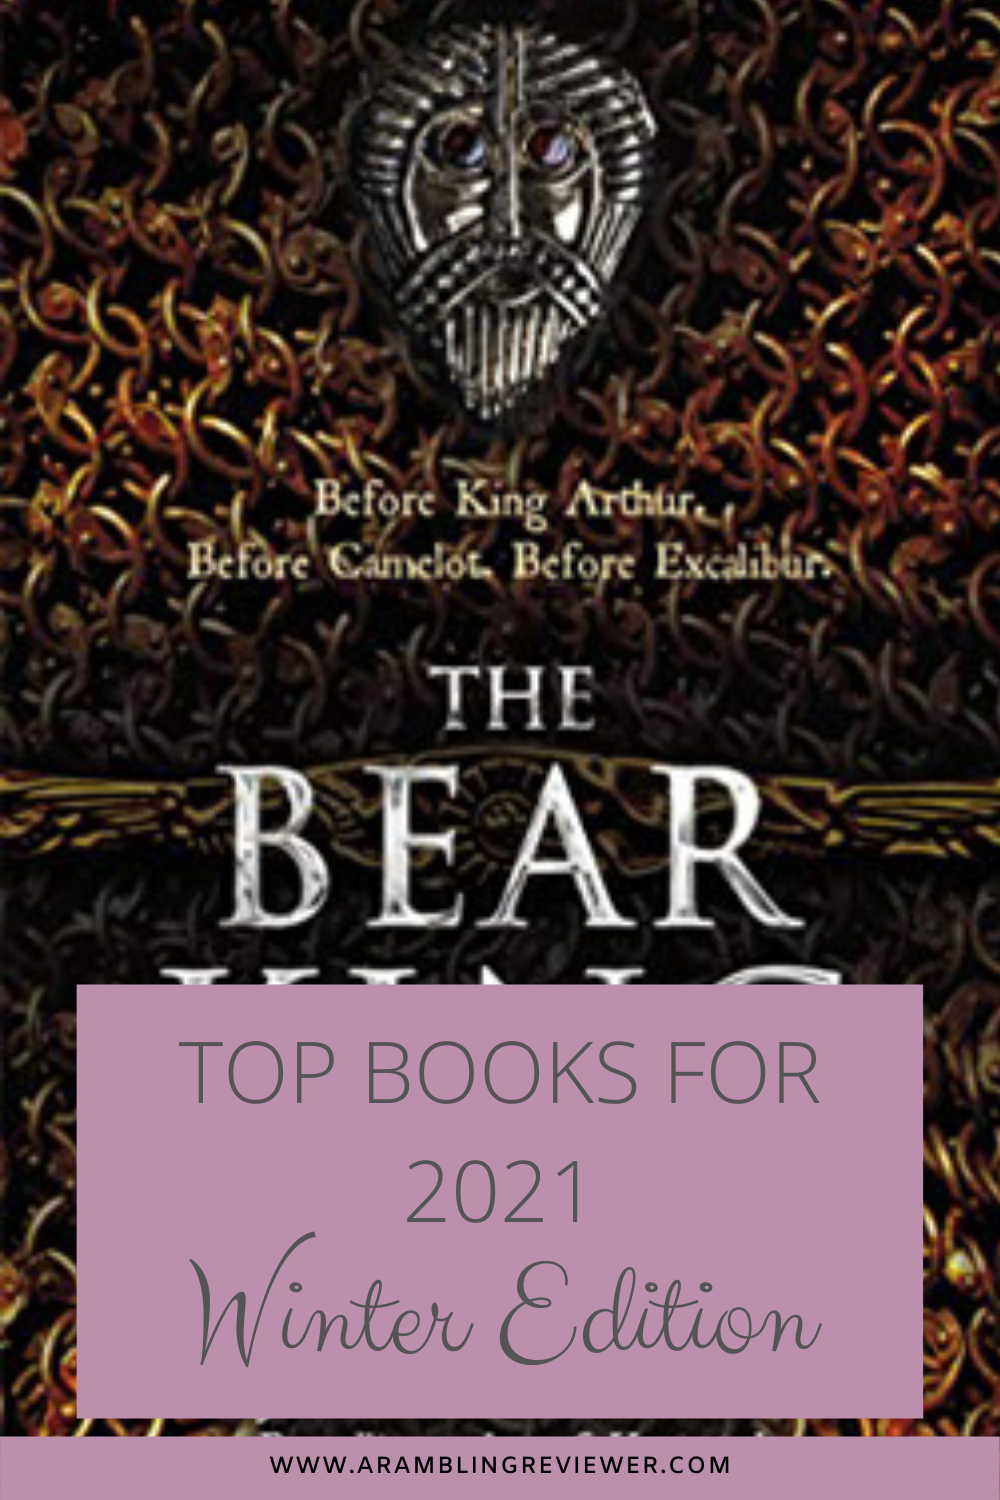 Pin On Book Reviews Recommendations